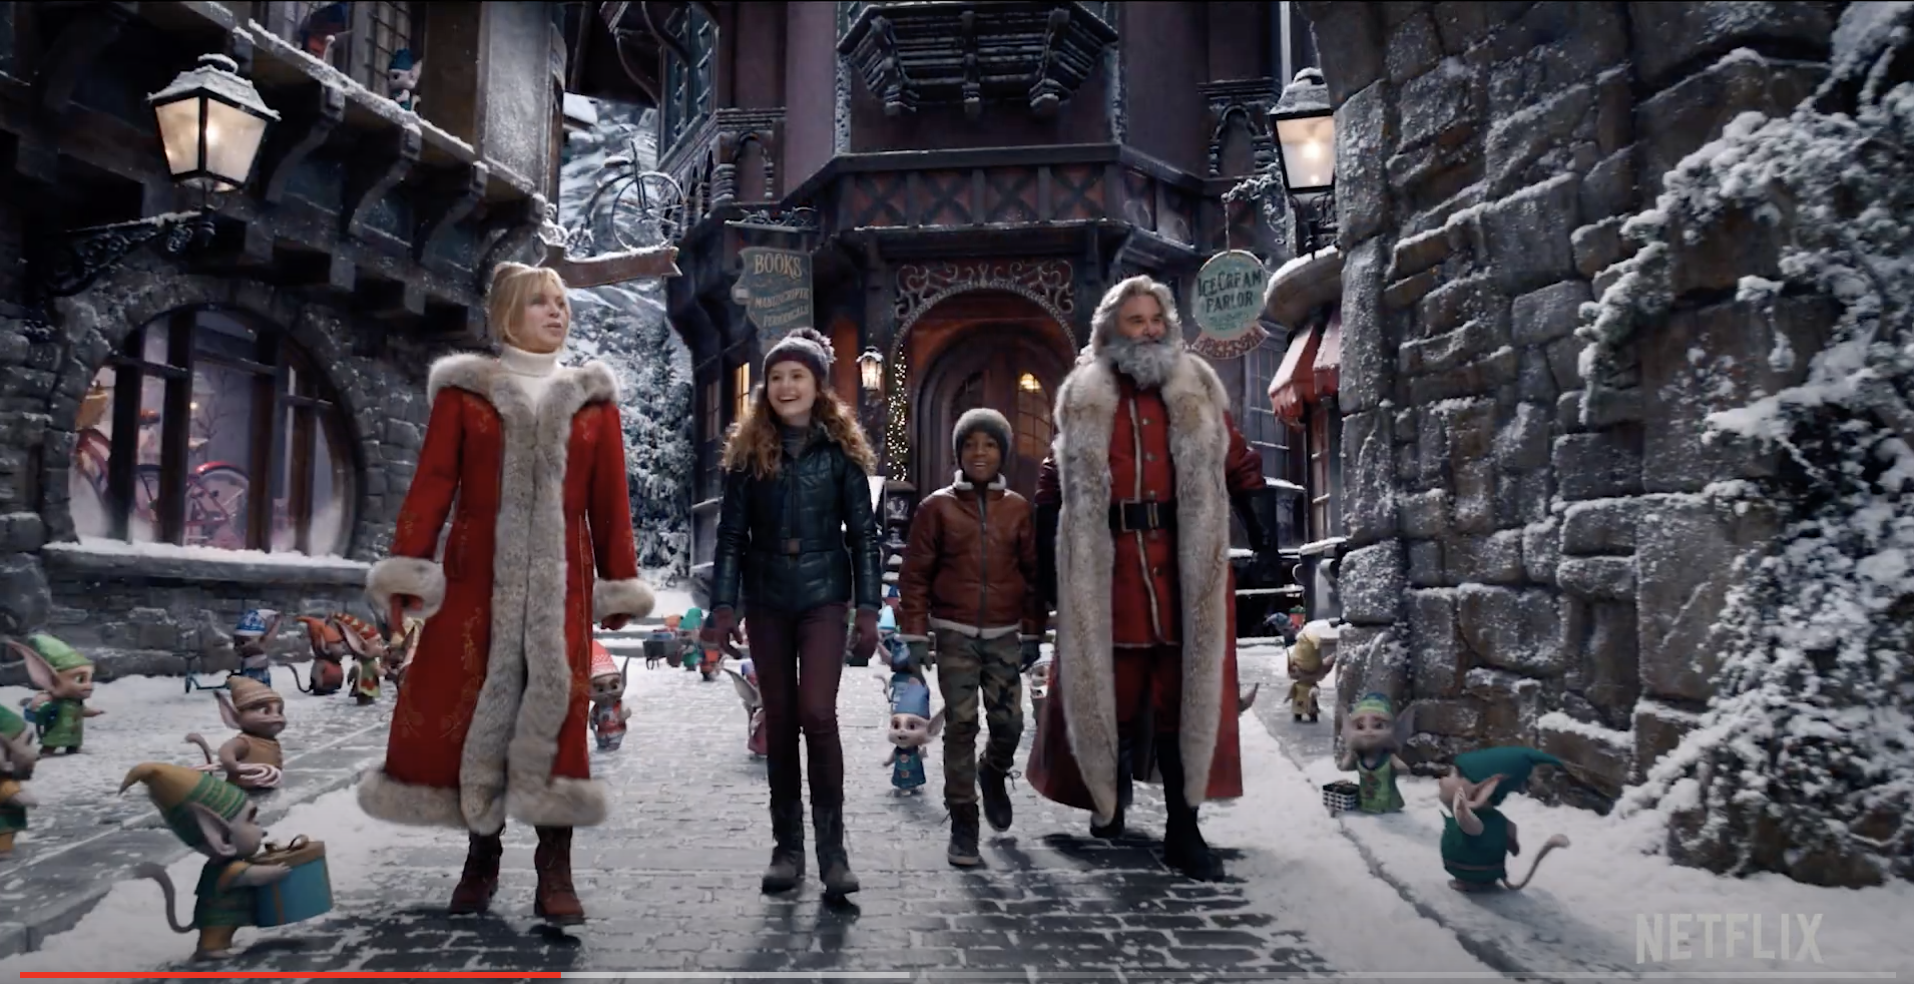 All About Netflix S The Christmas Chronicles 2 When Does The Christmas Chronicles Sequel Come Out